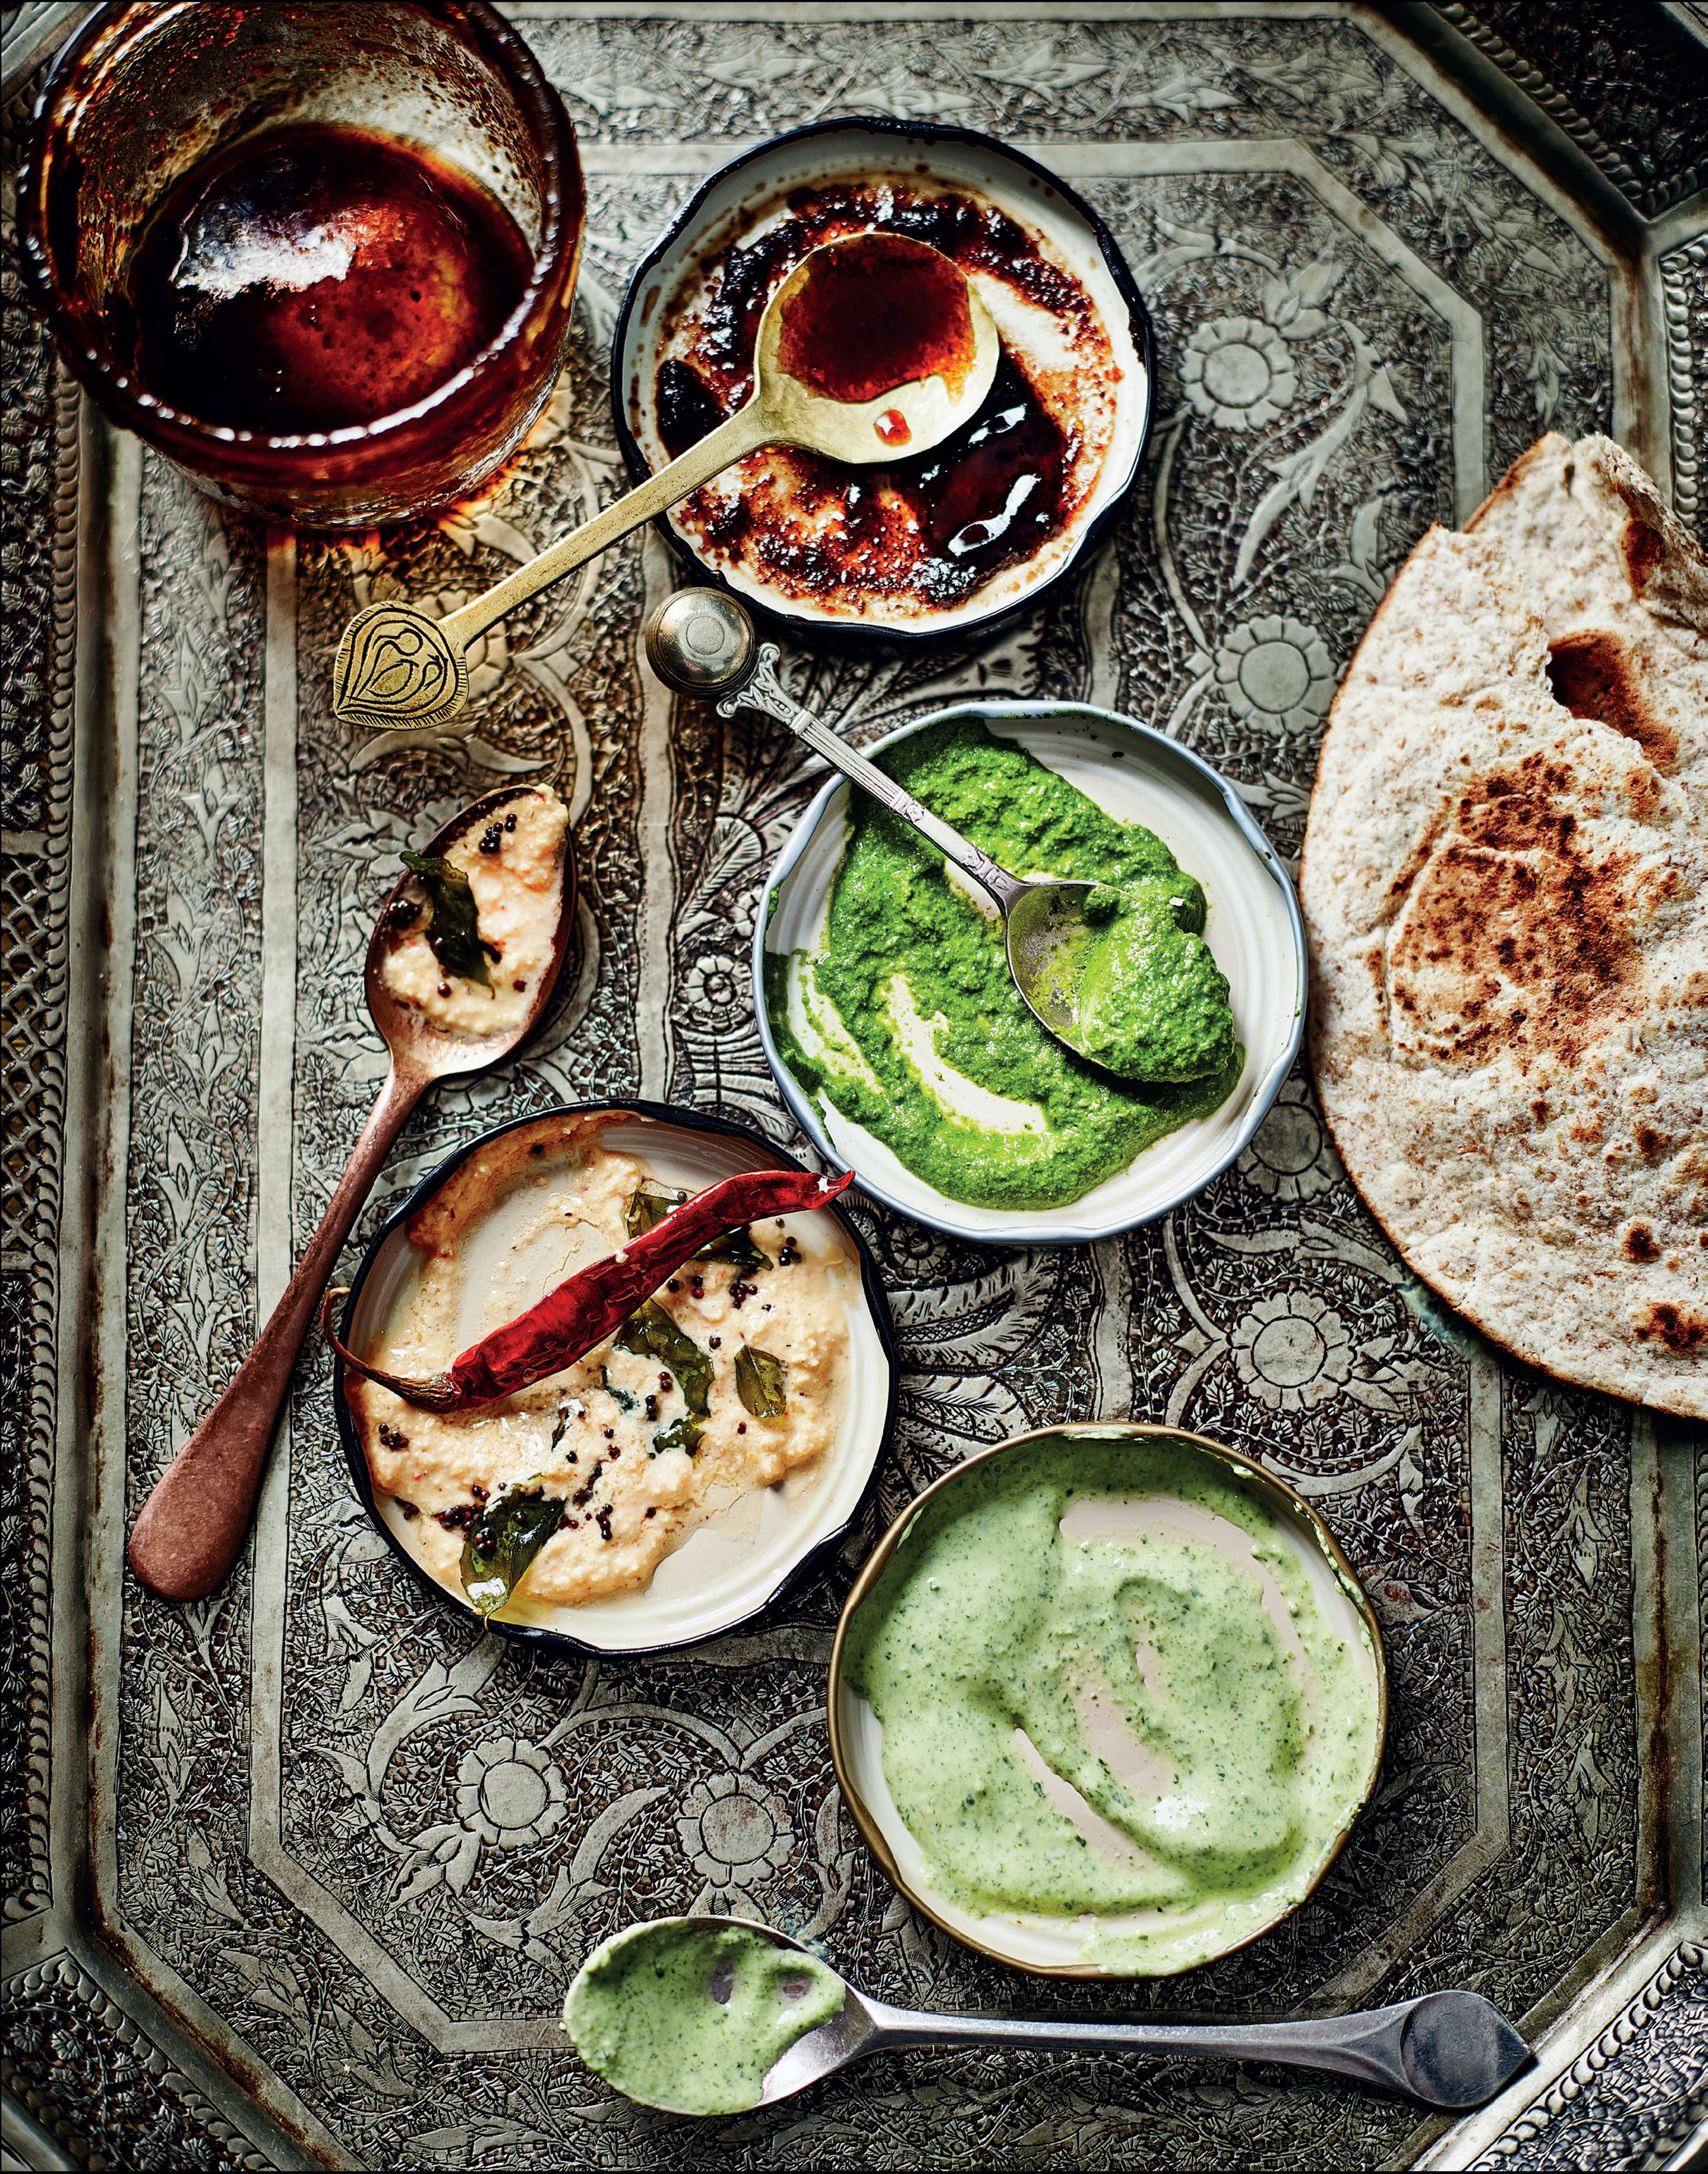 Minted yogurt chutney